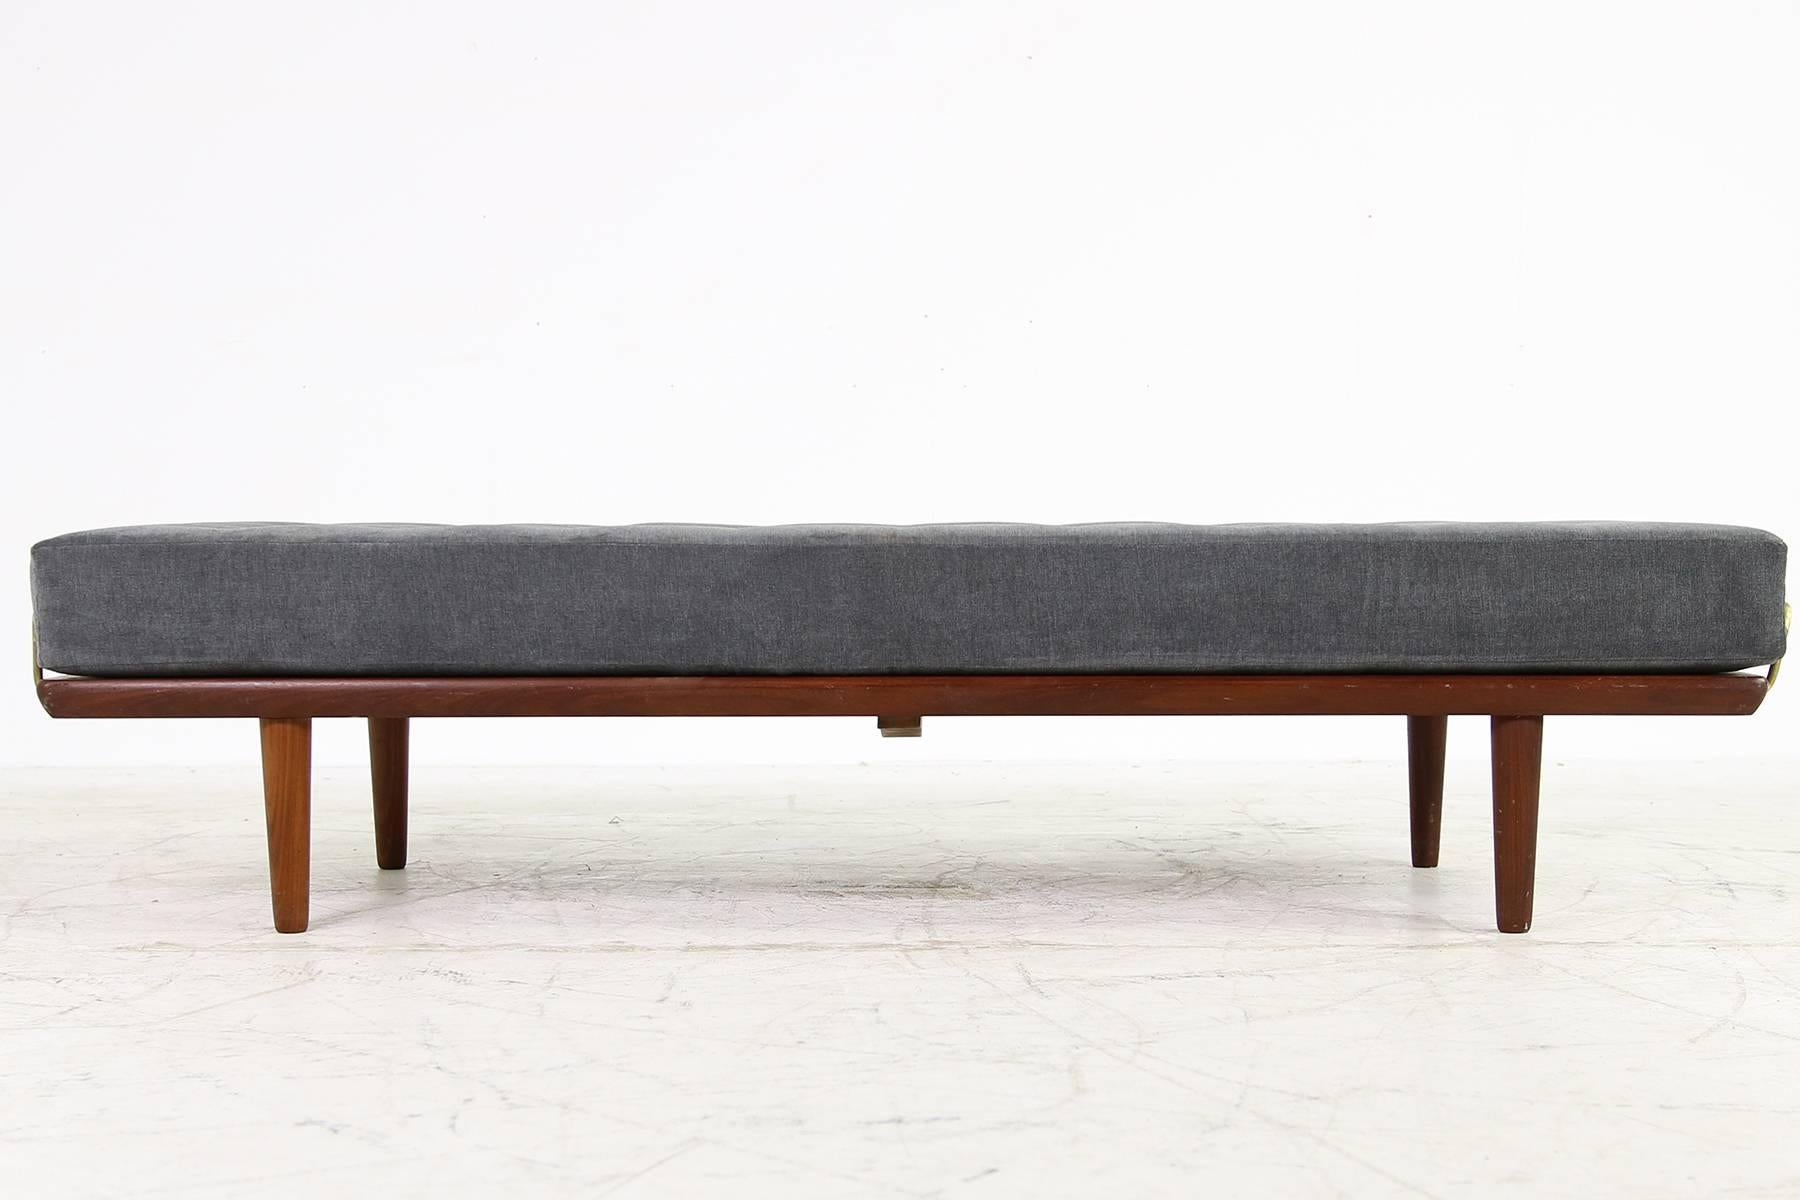 Teak Liege Danish 1950s Hans J Wegner Daybed Model Ge19 By Getama Teak And Brass Sofa